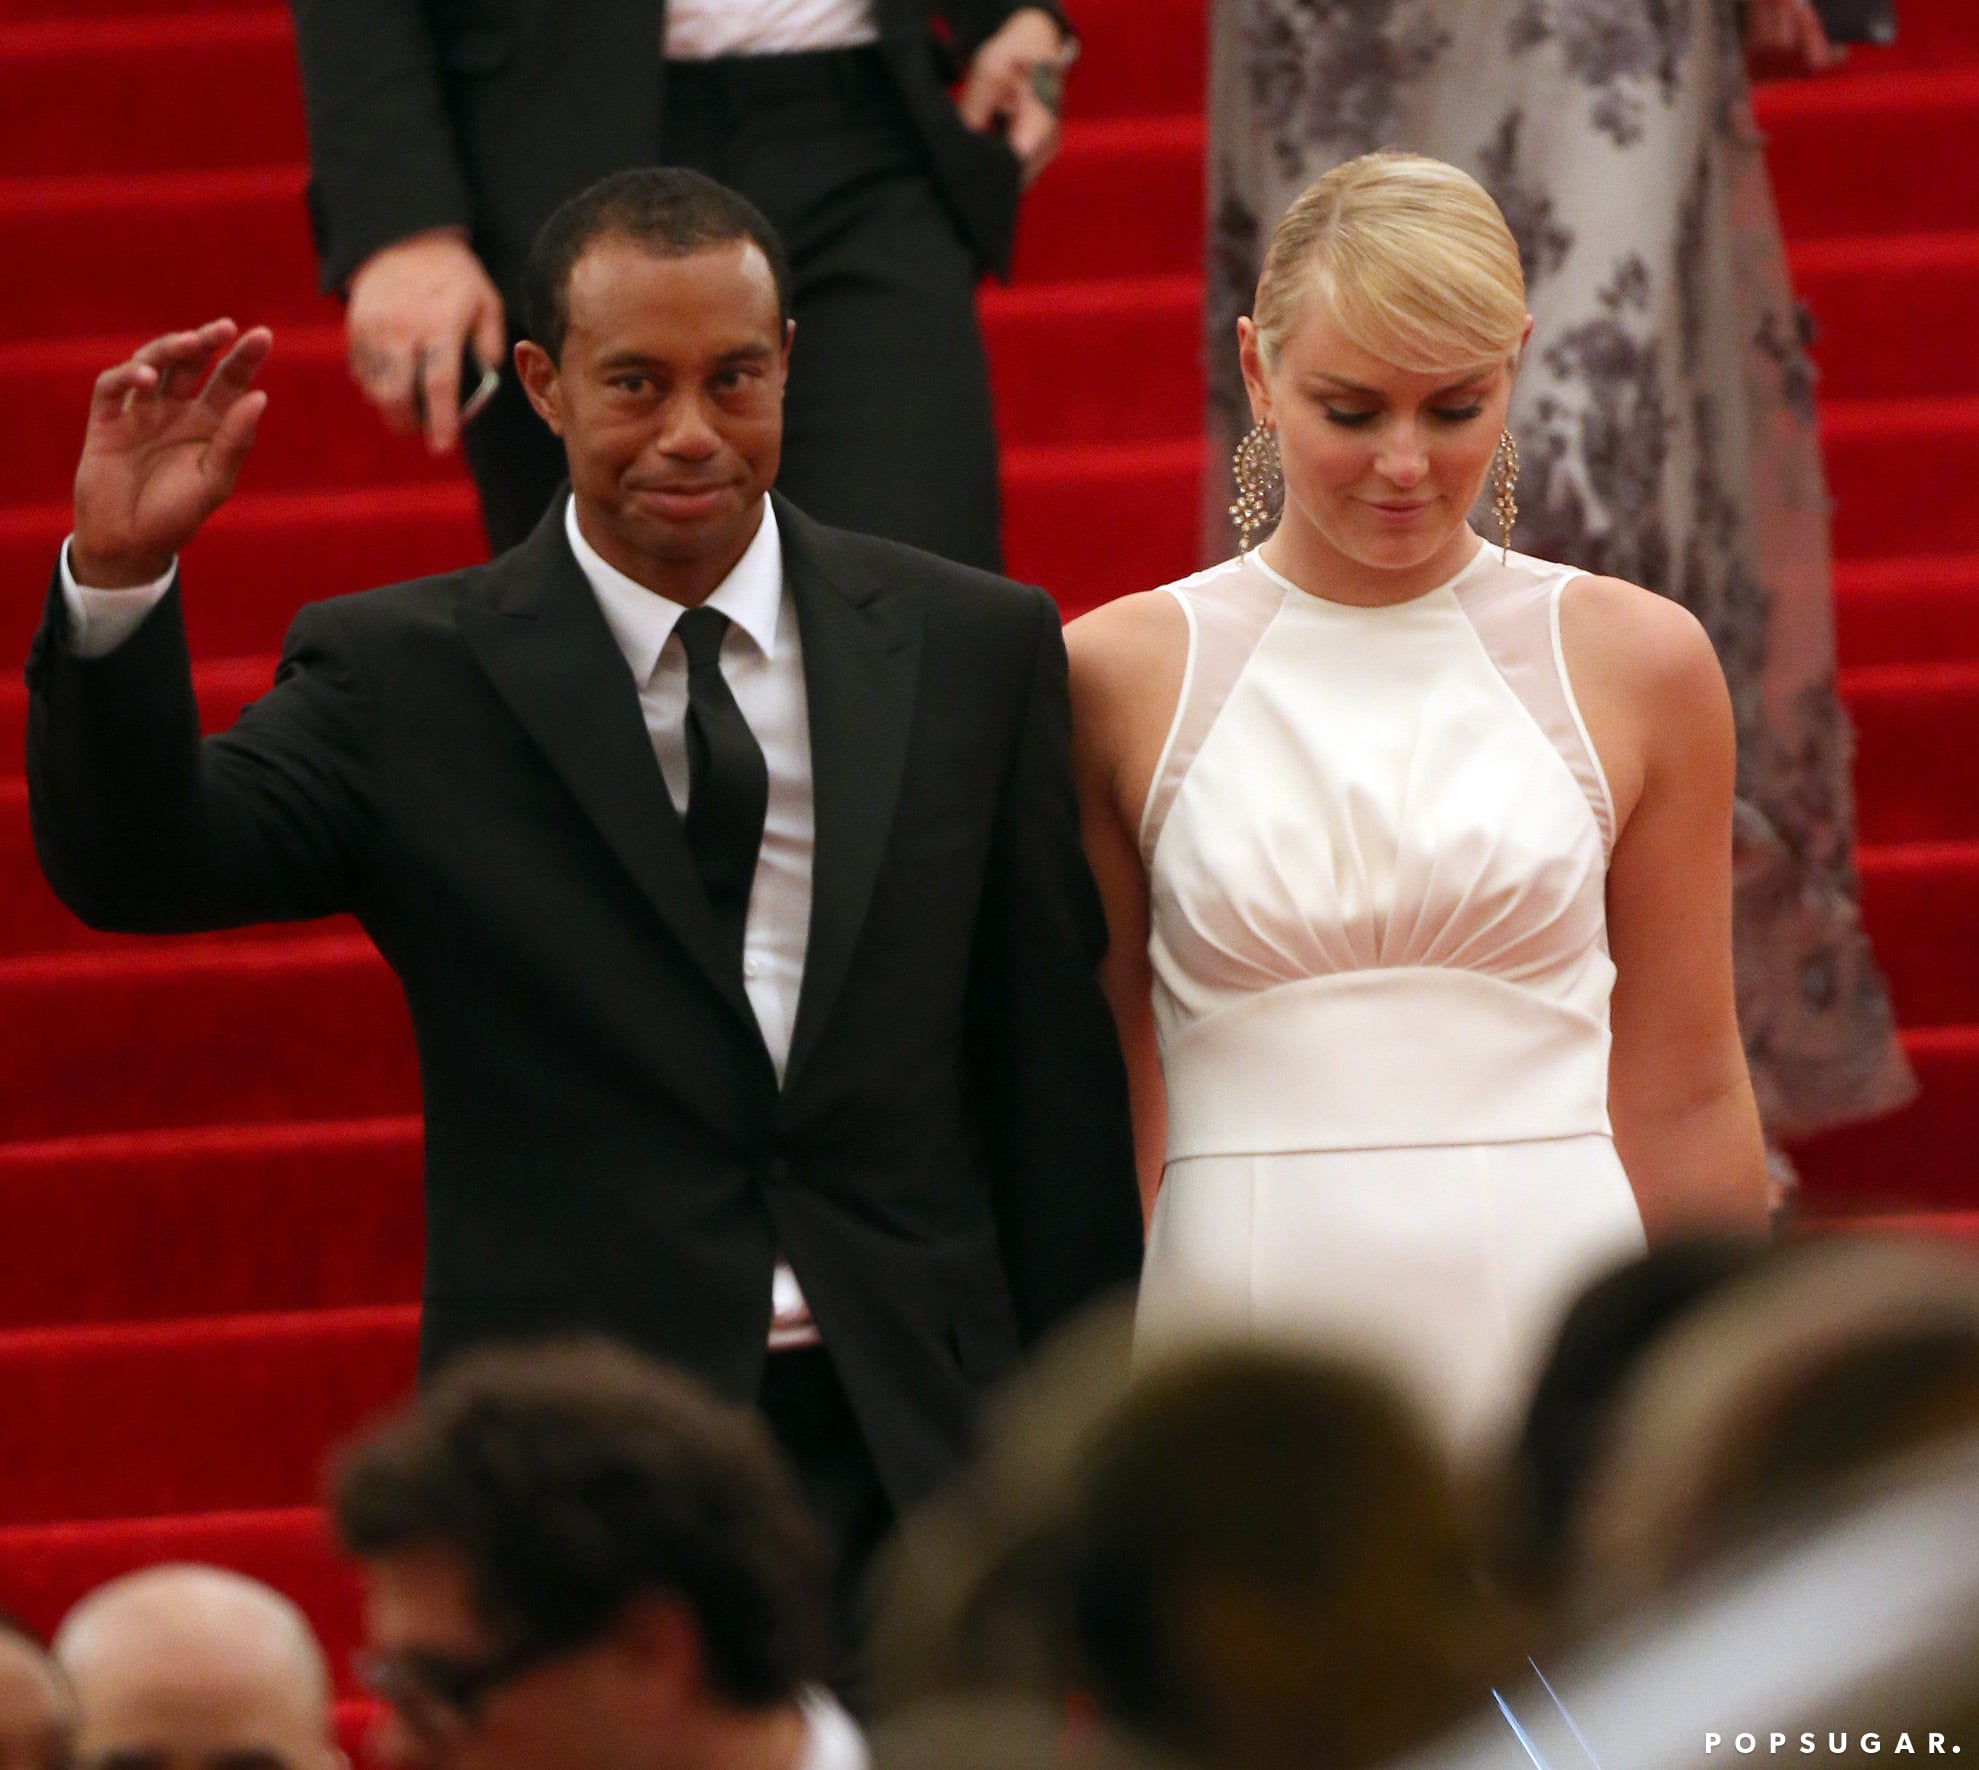 Tiger Woods and Lindsey Vonn left hand in hand.